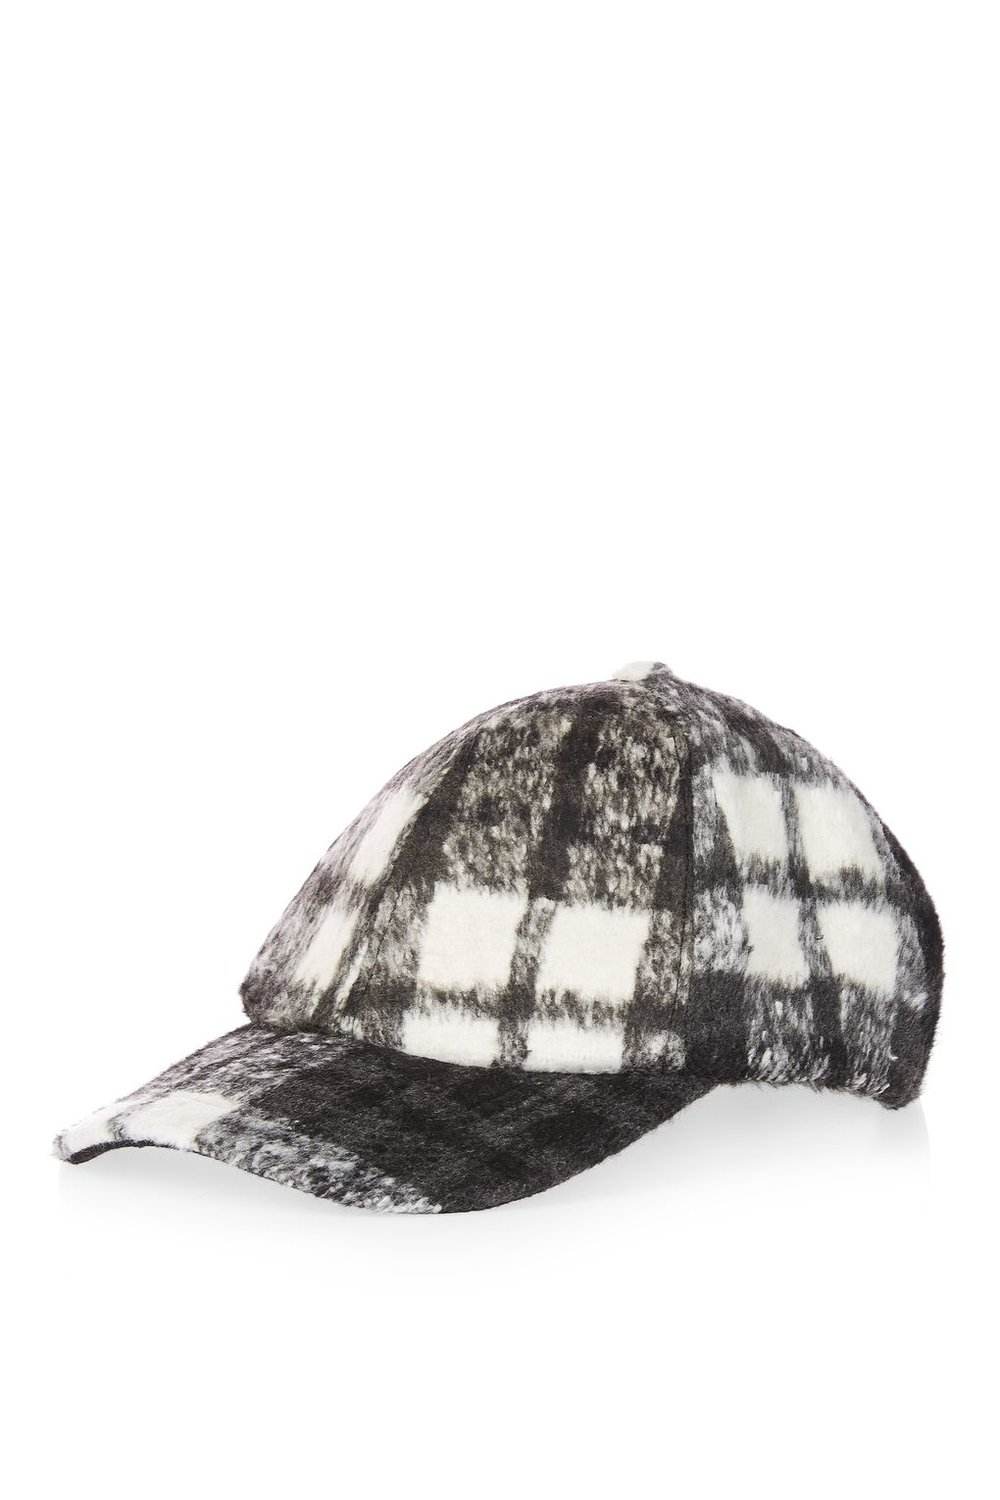 TOPSHOP PLAID HAT